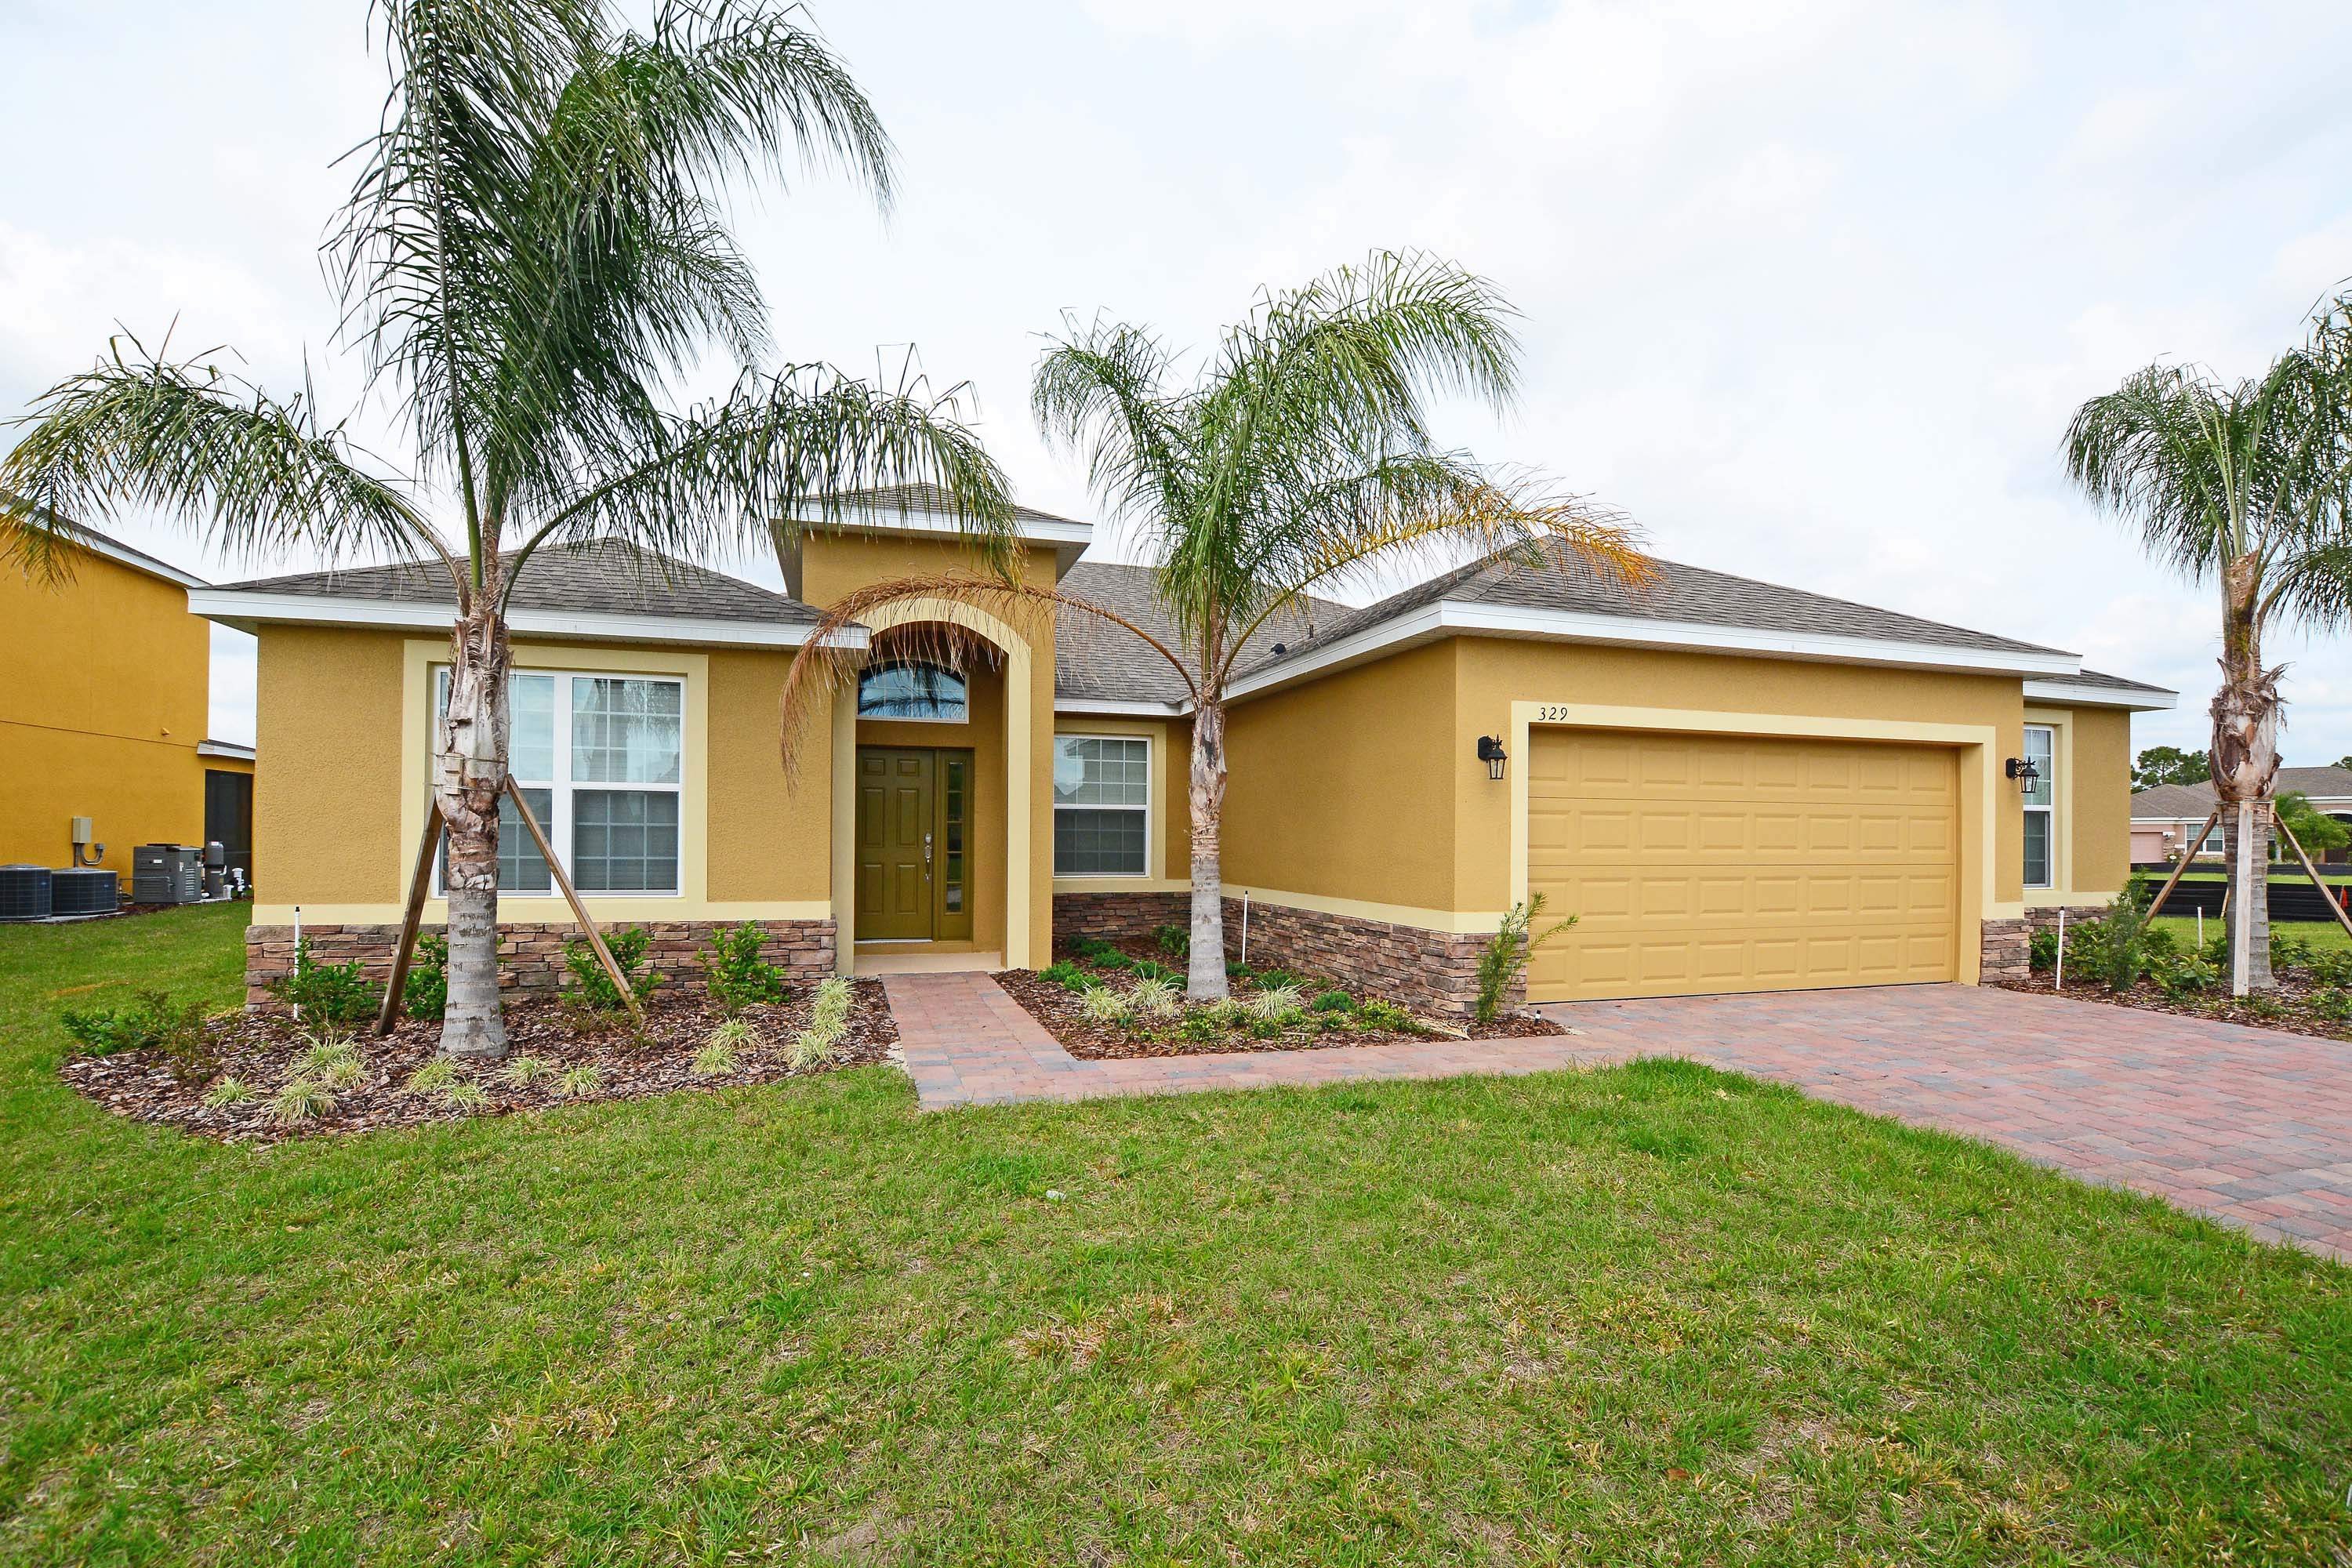 Vacation Homes For Rent In Davenport Fl Watersong Unit